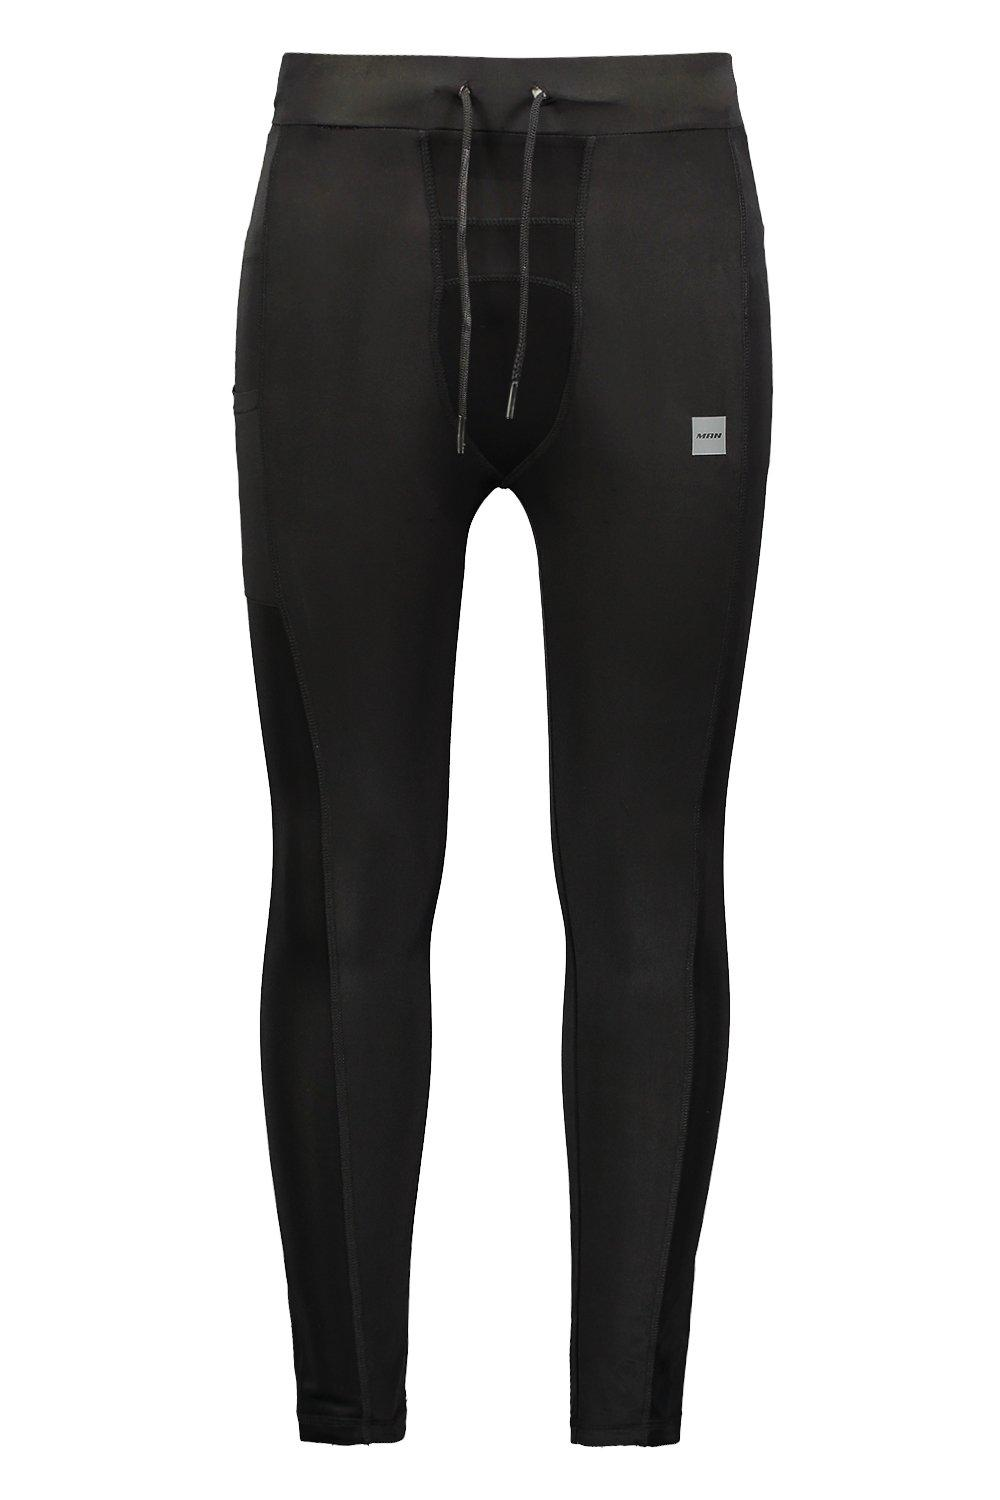 Gym Tight Reflective black Print Active With fdwBqdz